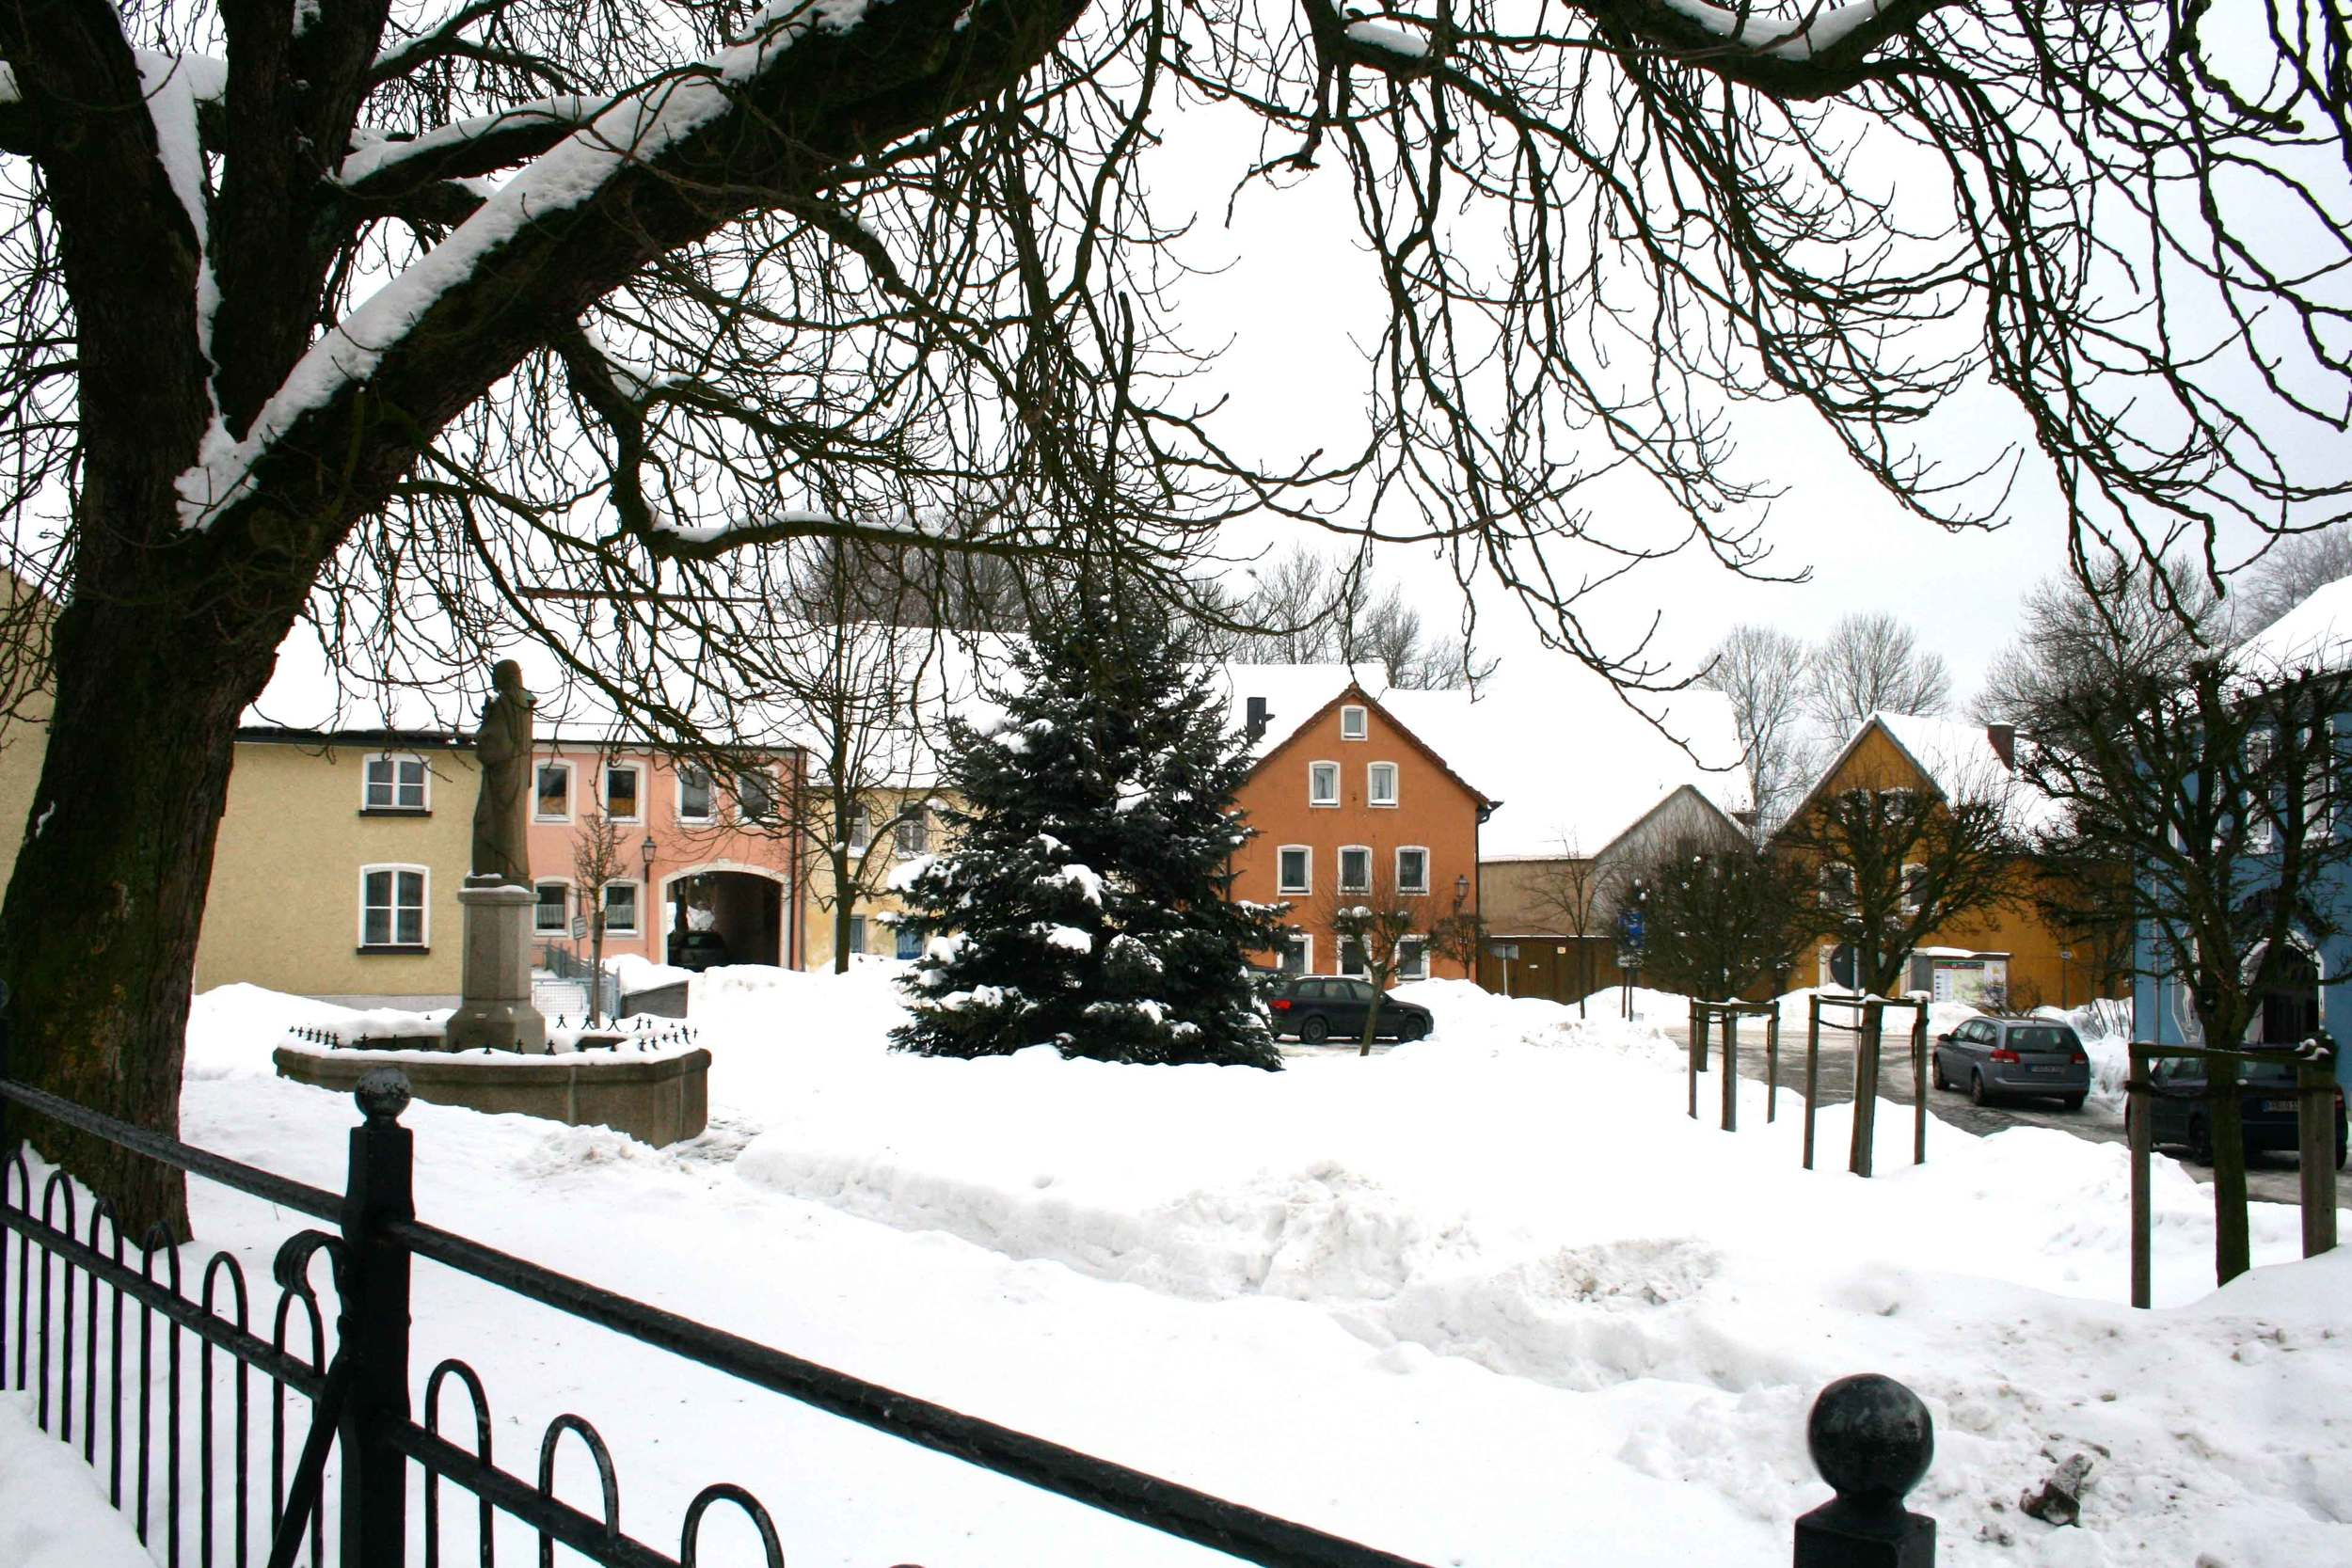 Image©sourcingstyle.com, Konnersreuth in winter.